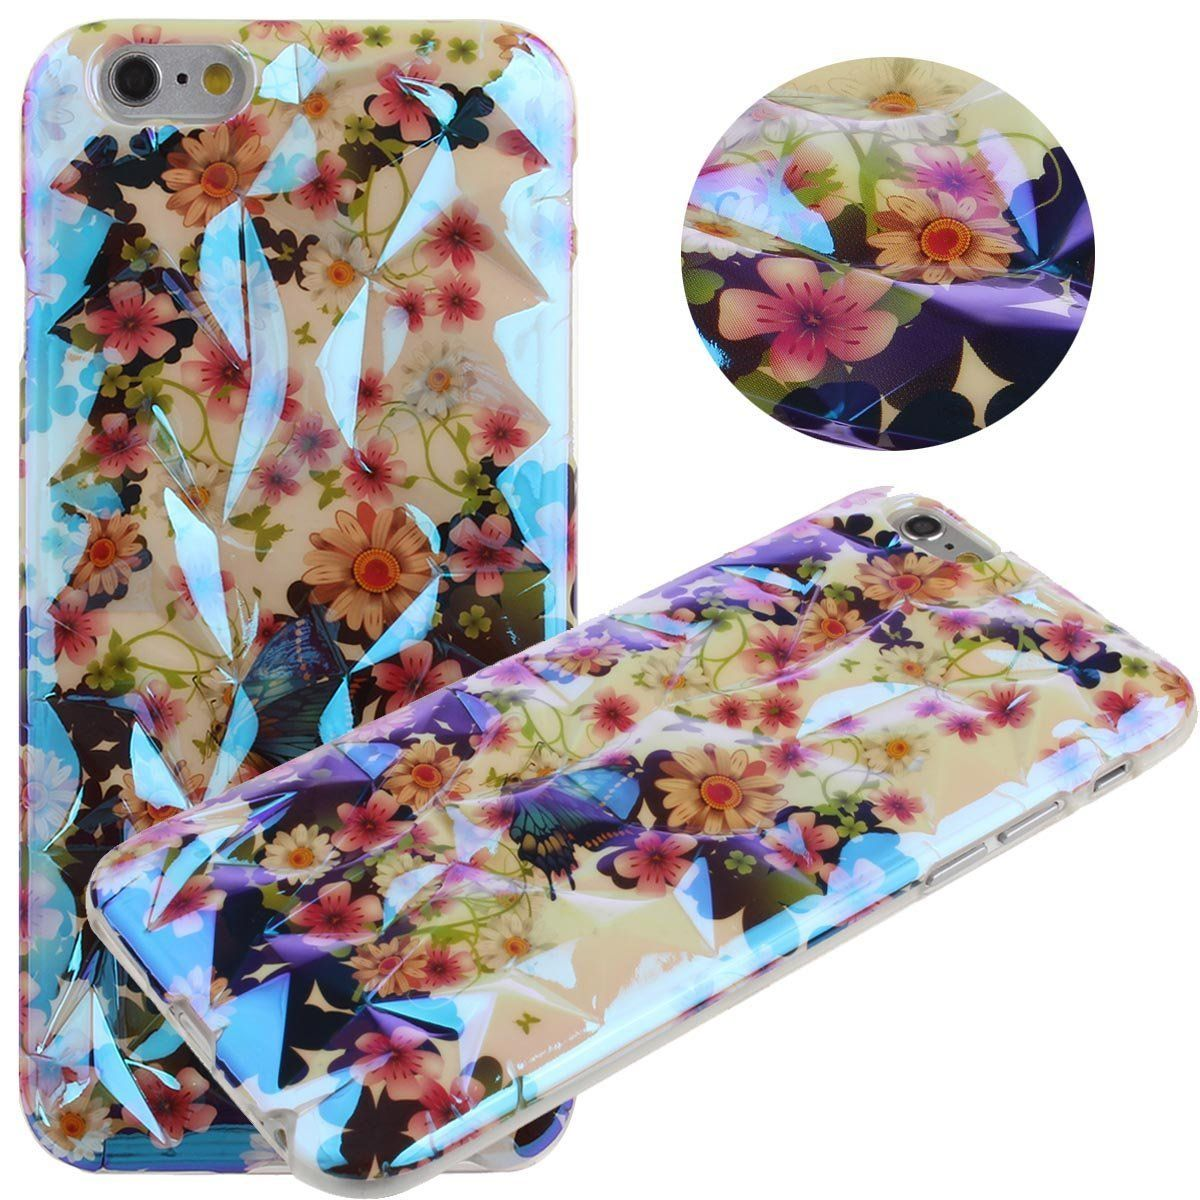 "New Release buy it for your girlfriends as a Valentine's day gift Nsstar Luxury 3D Flower Bird Tree Cage Cover Floral Crystal Diamond Protective Slim Fit Skin Hard Back Case Cover for Apple iPhone 6 with 4.7"" http://amzn.to/1BG68k2"